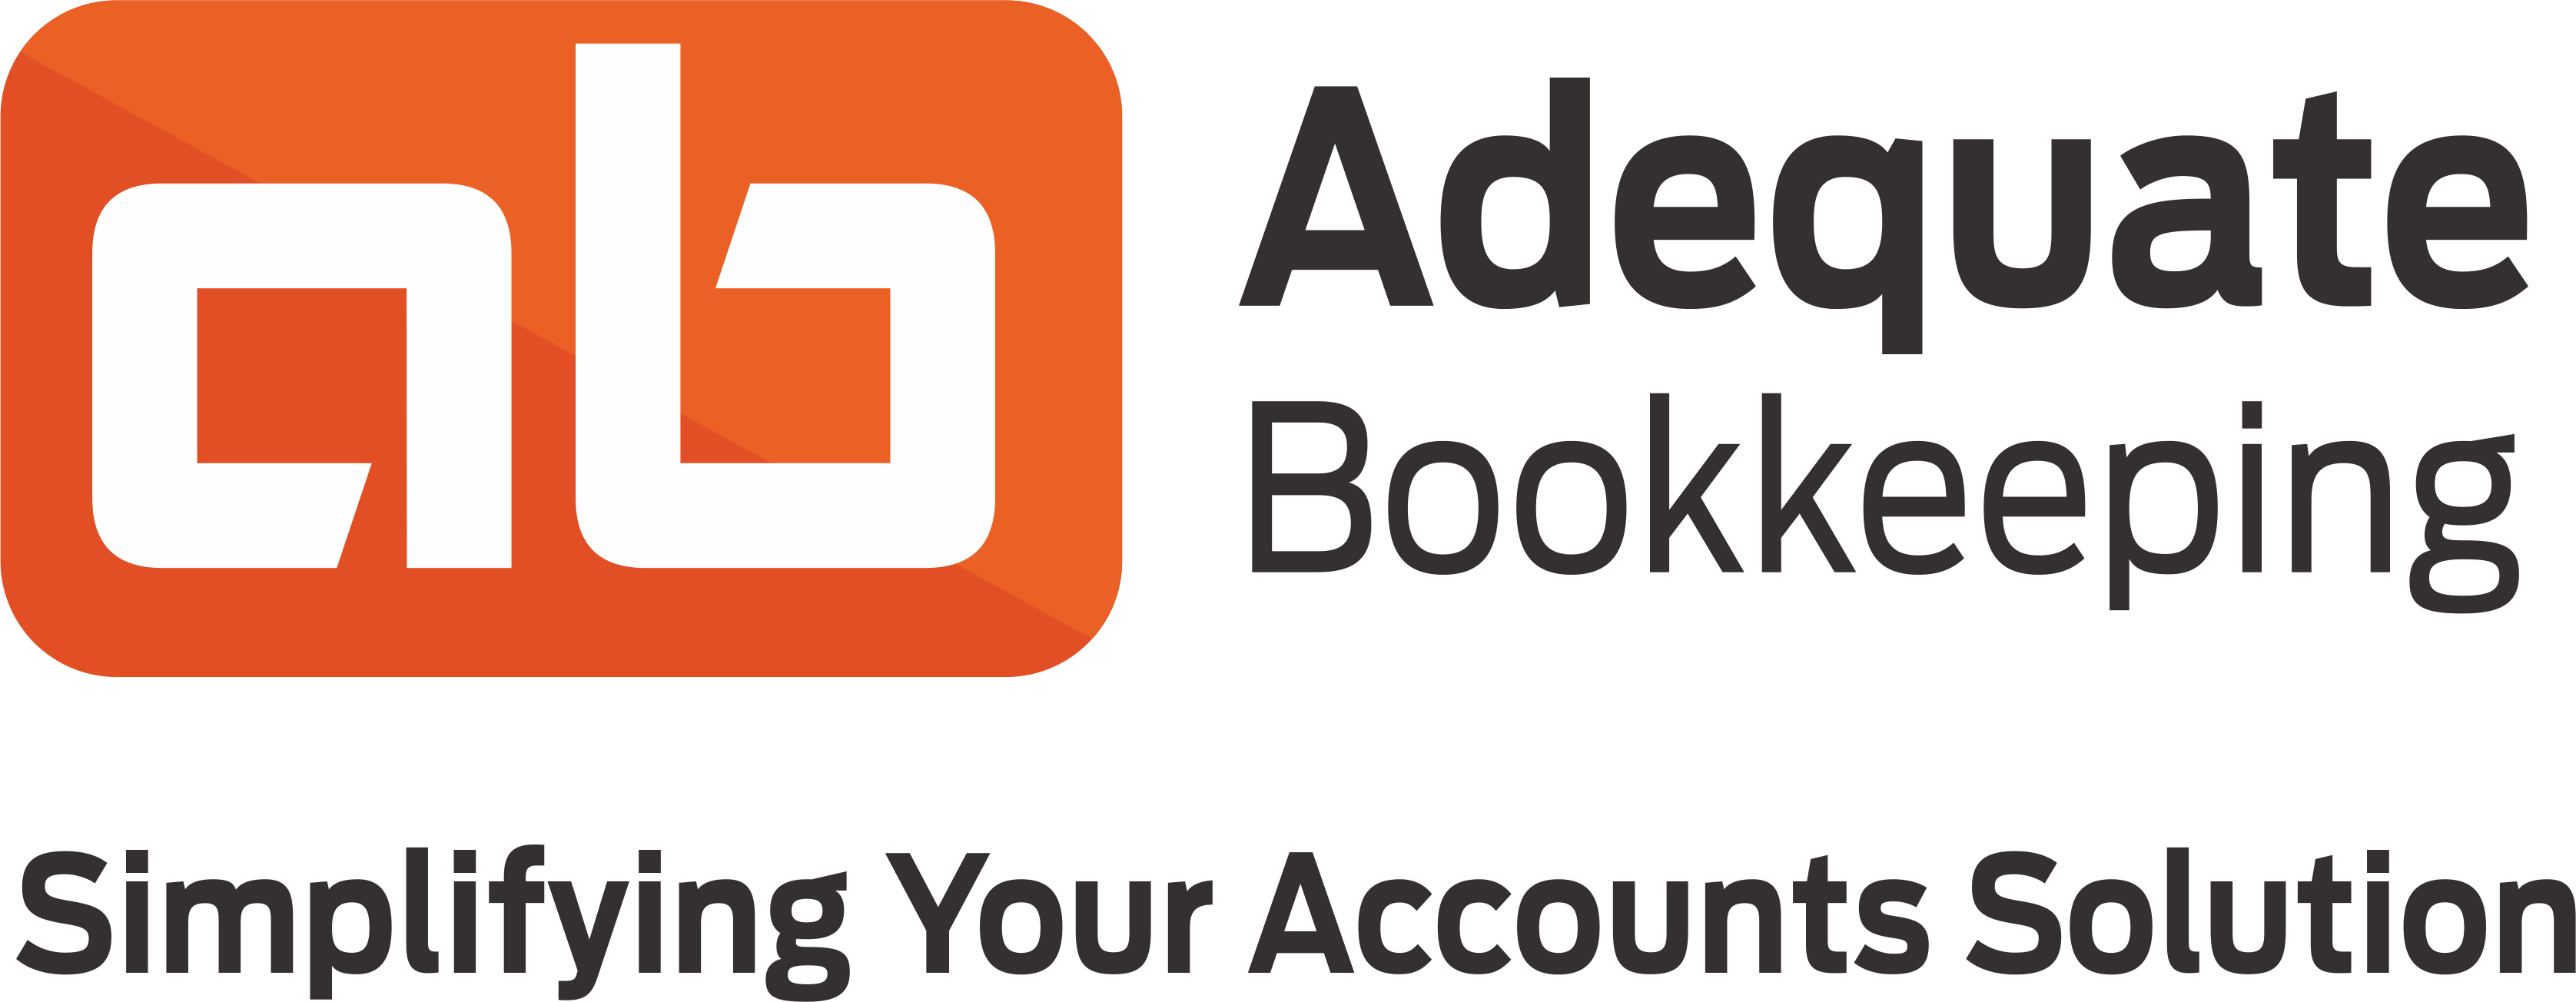 ADEQUATE BOOKKEEPING SERVICES LLP